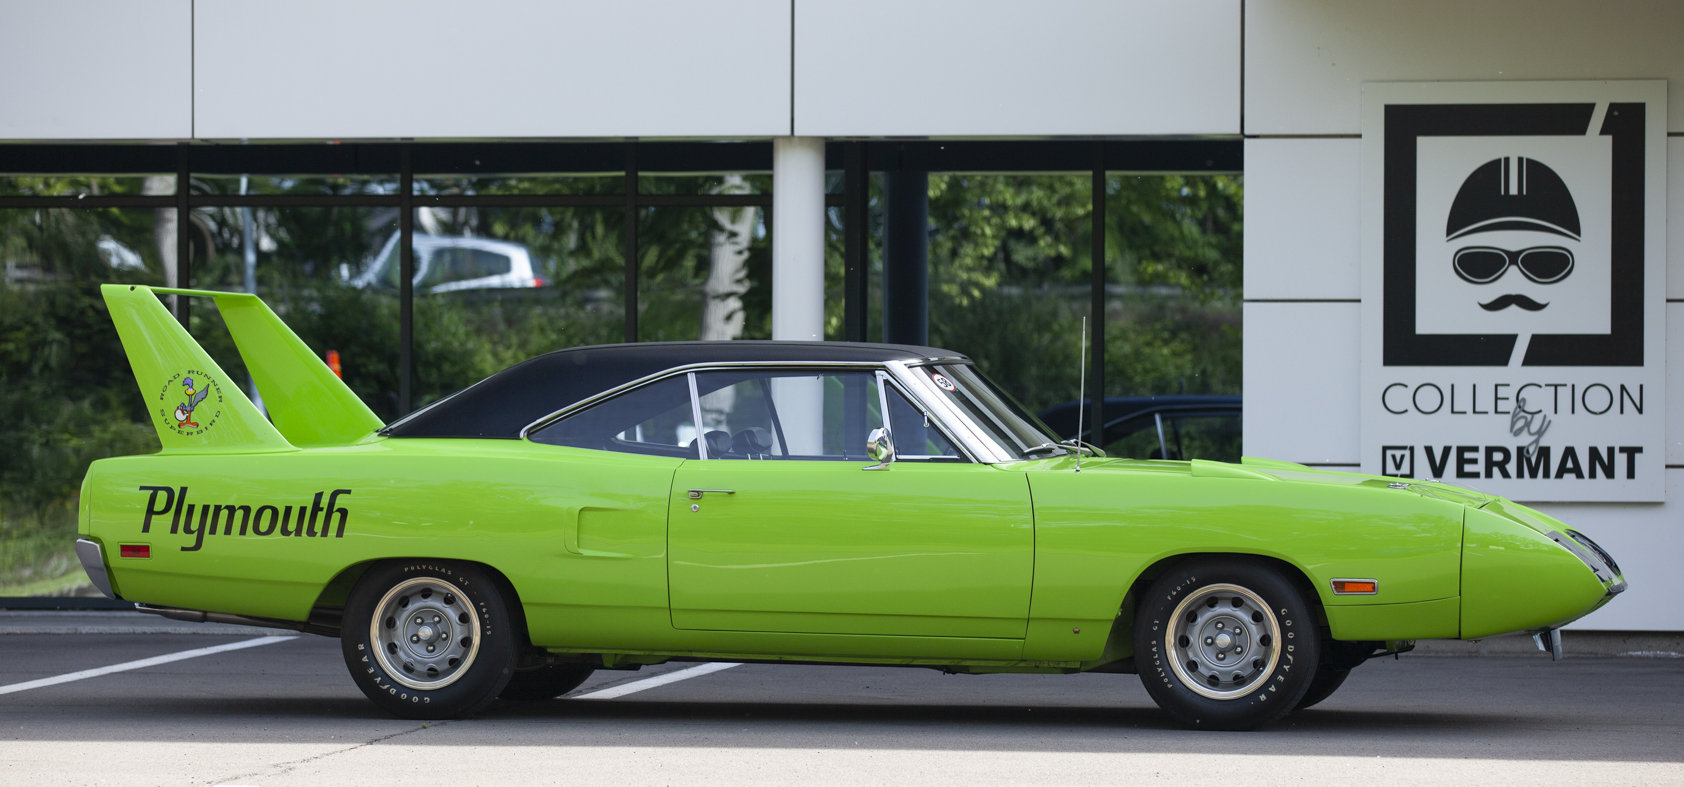 1970 Plymouth Road Runner Superbird - Concours winner!! For Sale (picture 2 of 6)